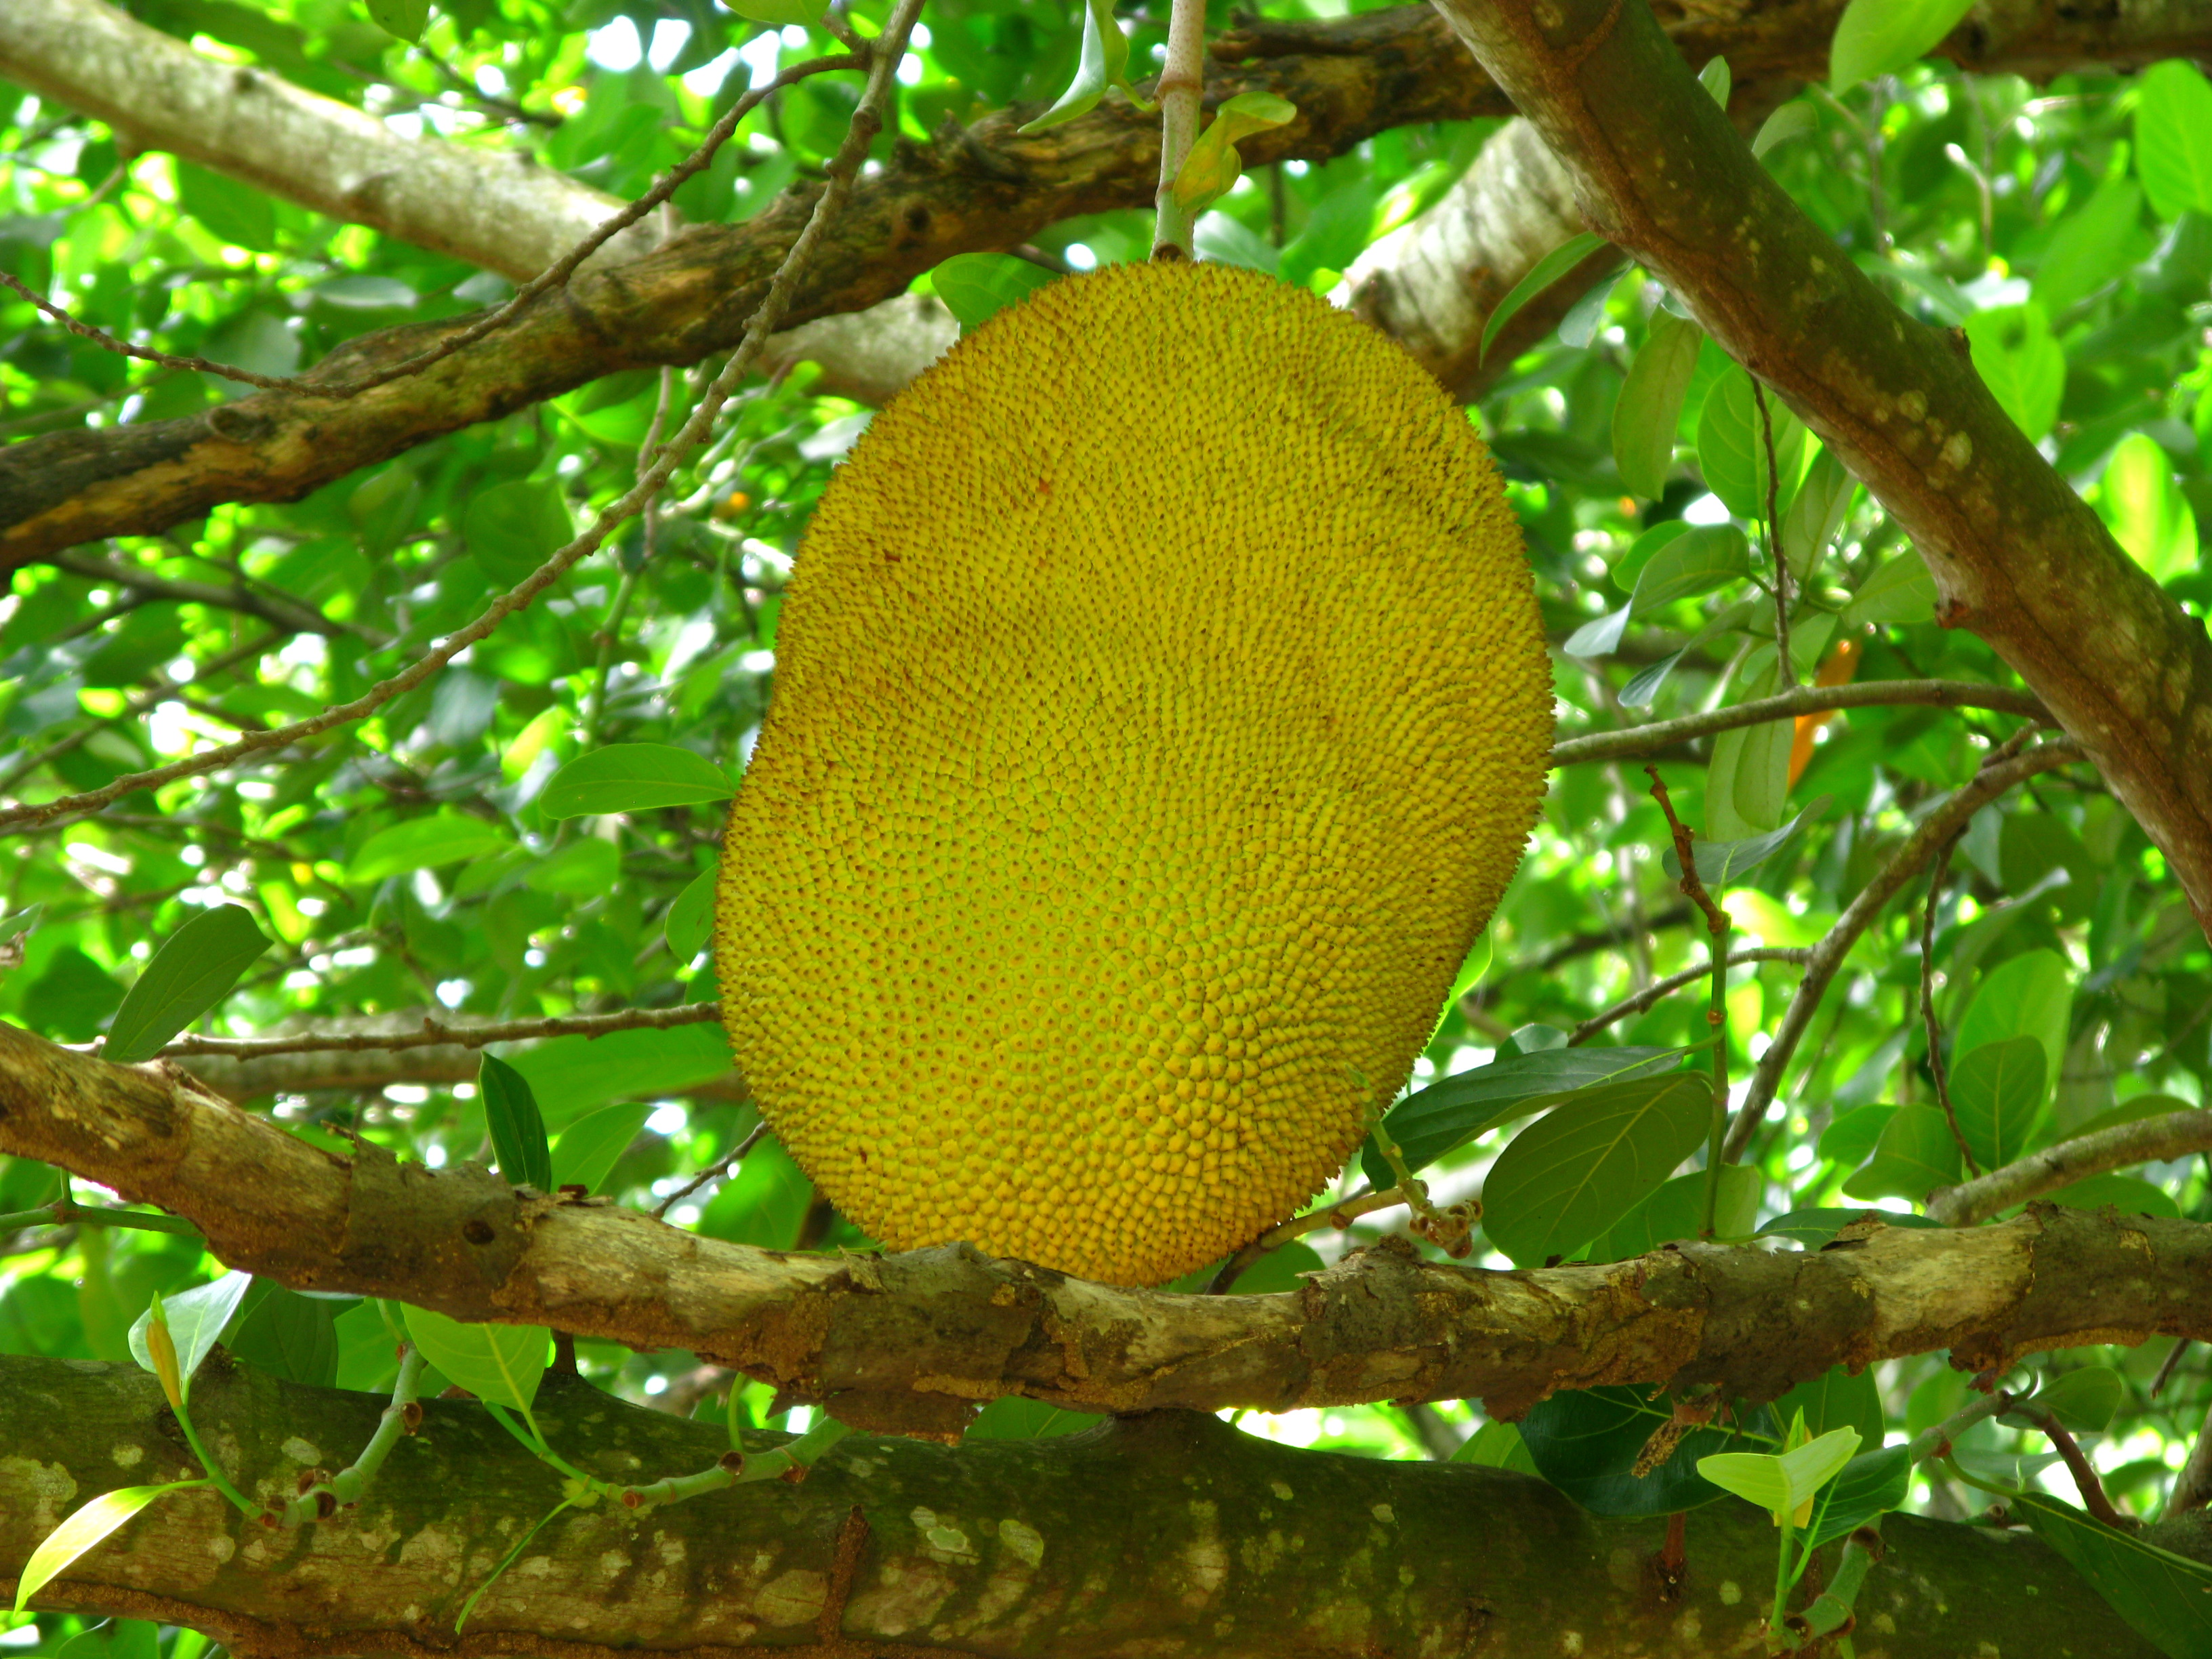 jackfruit: largest tree-borne fruit essay Jackfruit, or artocarpus heterophyllus, is the largest tree-borne fruit in the world, growing to the hefty weight of 80 pounds it is also the national fruit of bangladesh and may have been cultivated in india as early as 6,000 years ago related to the breadfruit and marang, its buttery flesh is thick with fiber and.